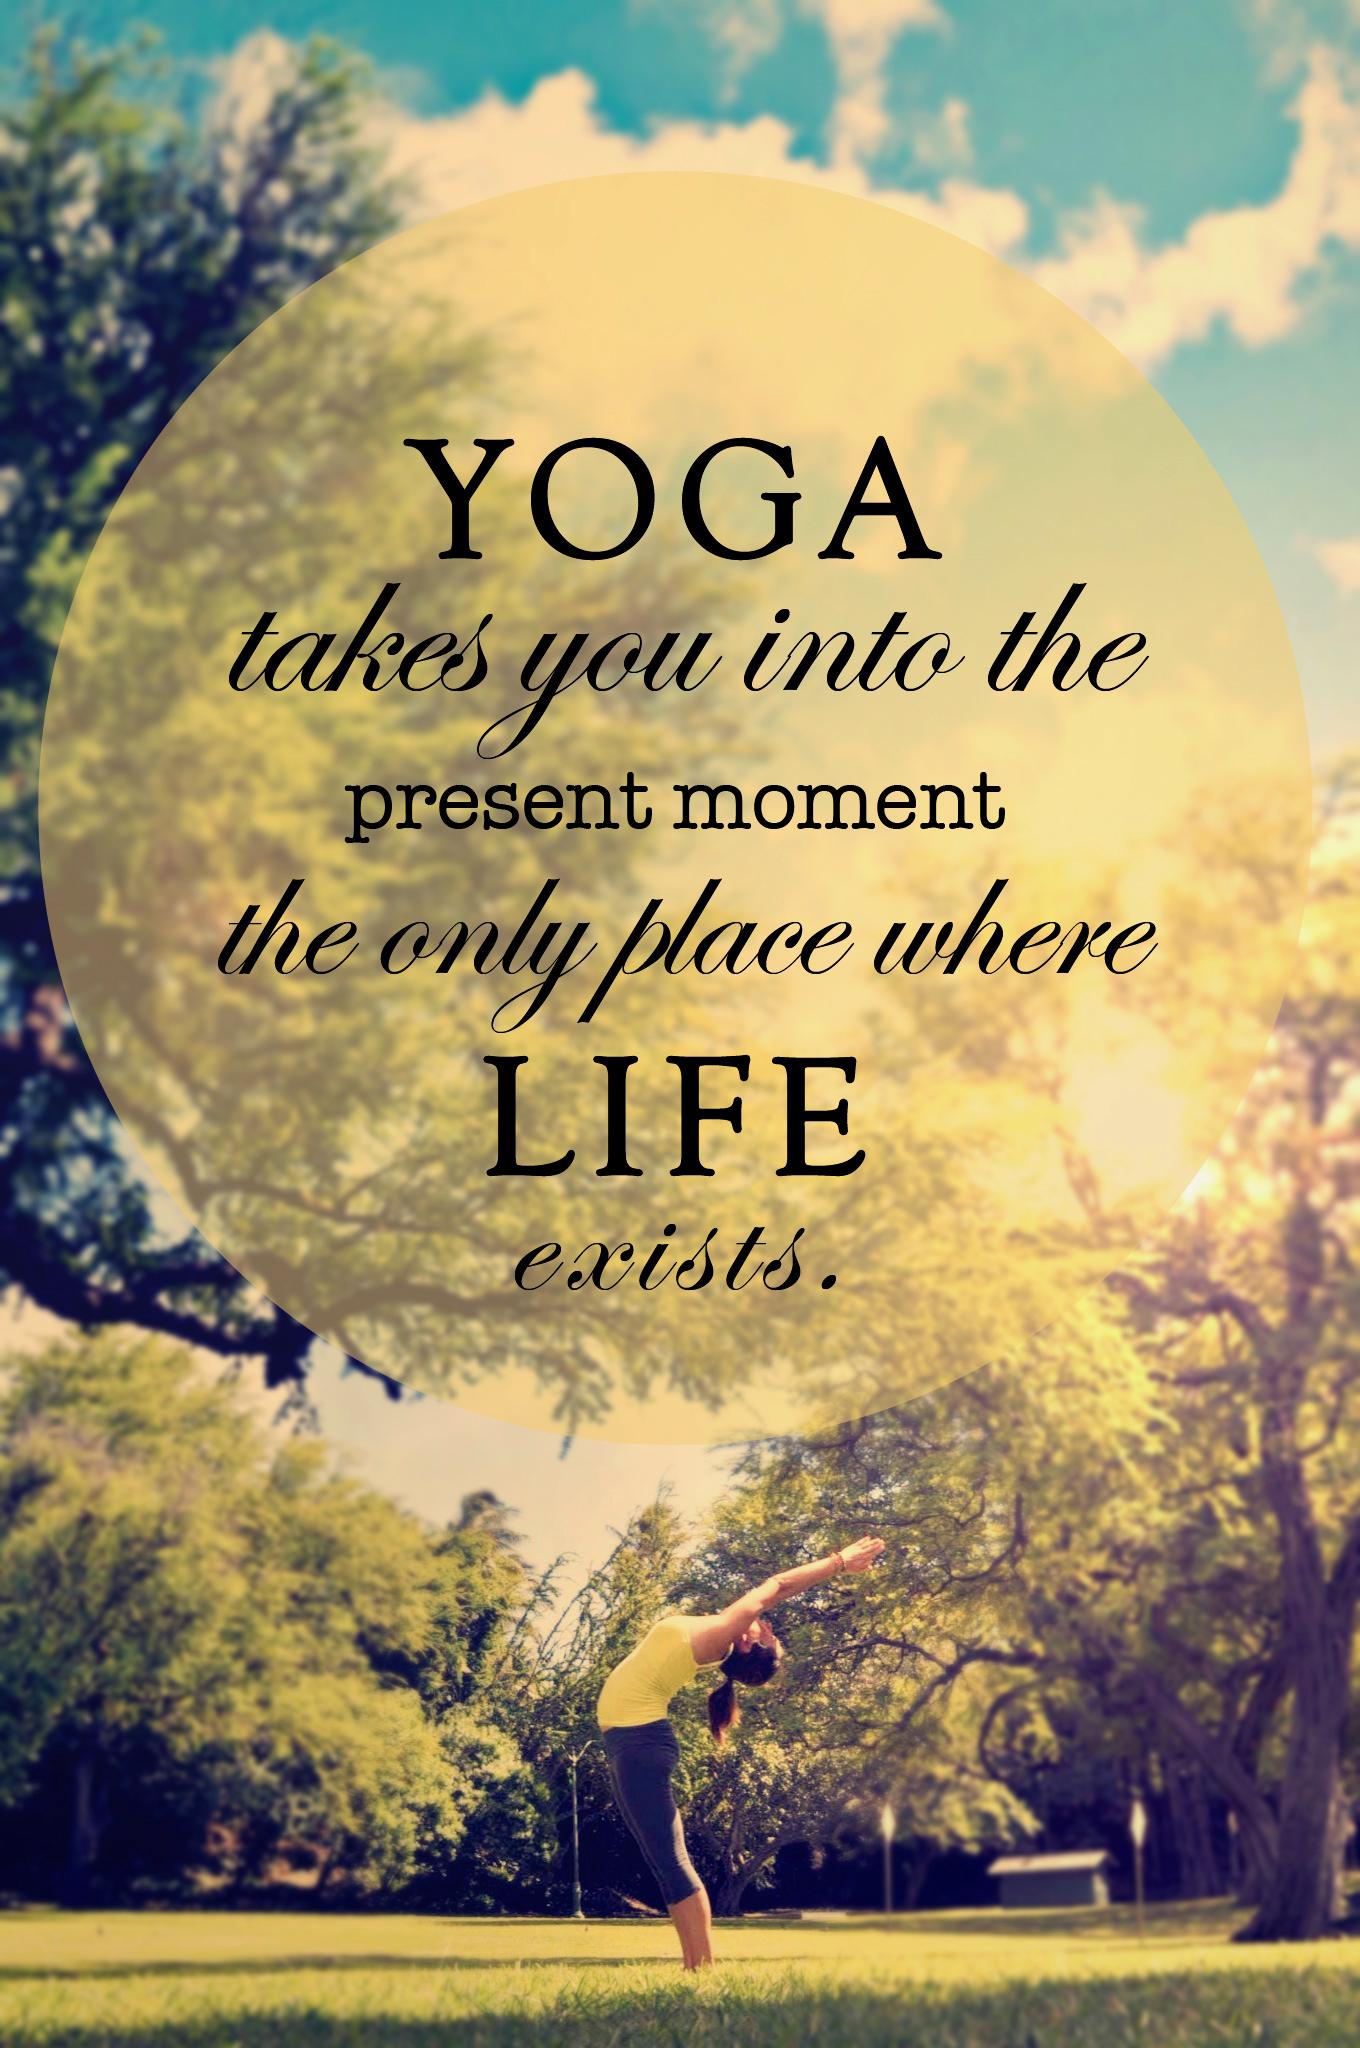 yoga quotes about life - photo #1